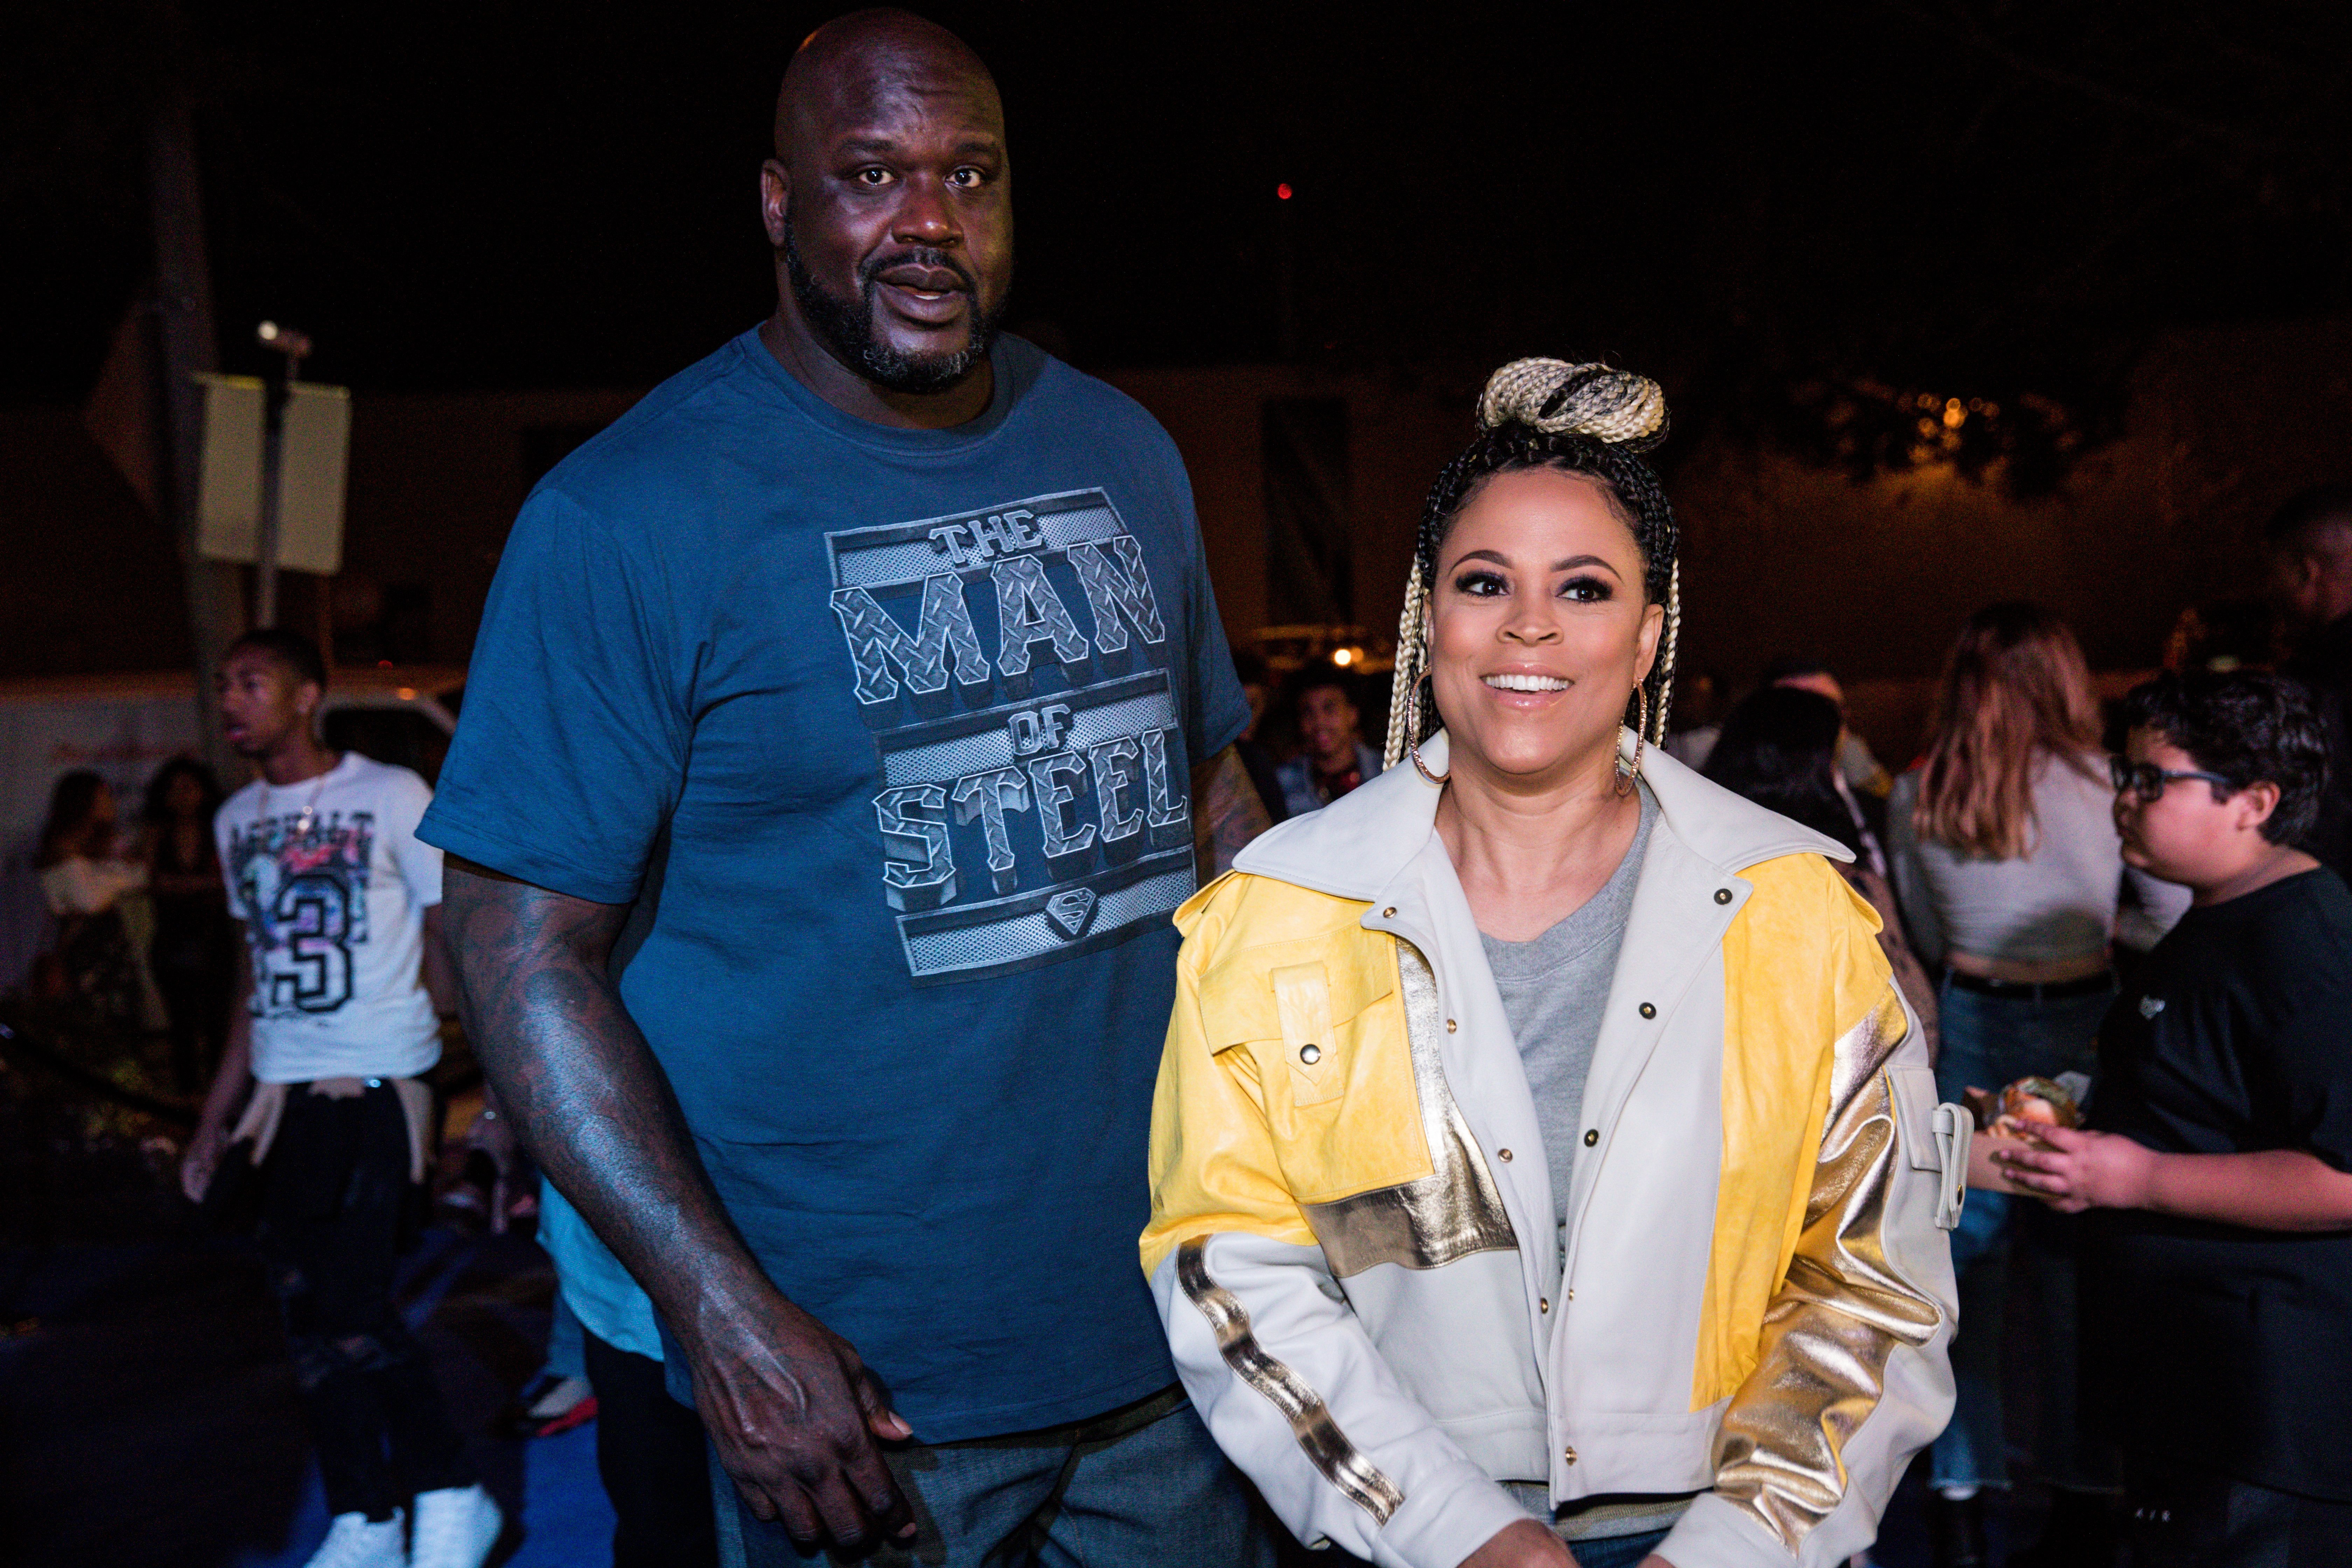 Shaquille & Shaunie O'Neal at their son Shareef's 18th birthday party on Jan. 13, 2018 in California | Photo: Getty Images